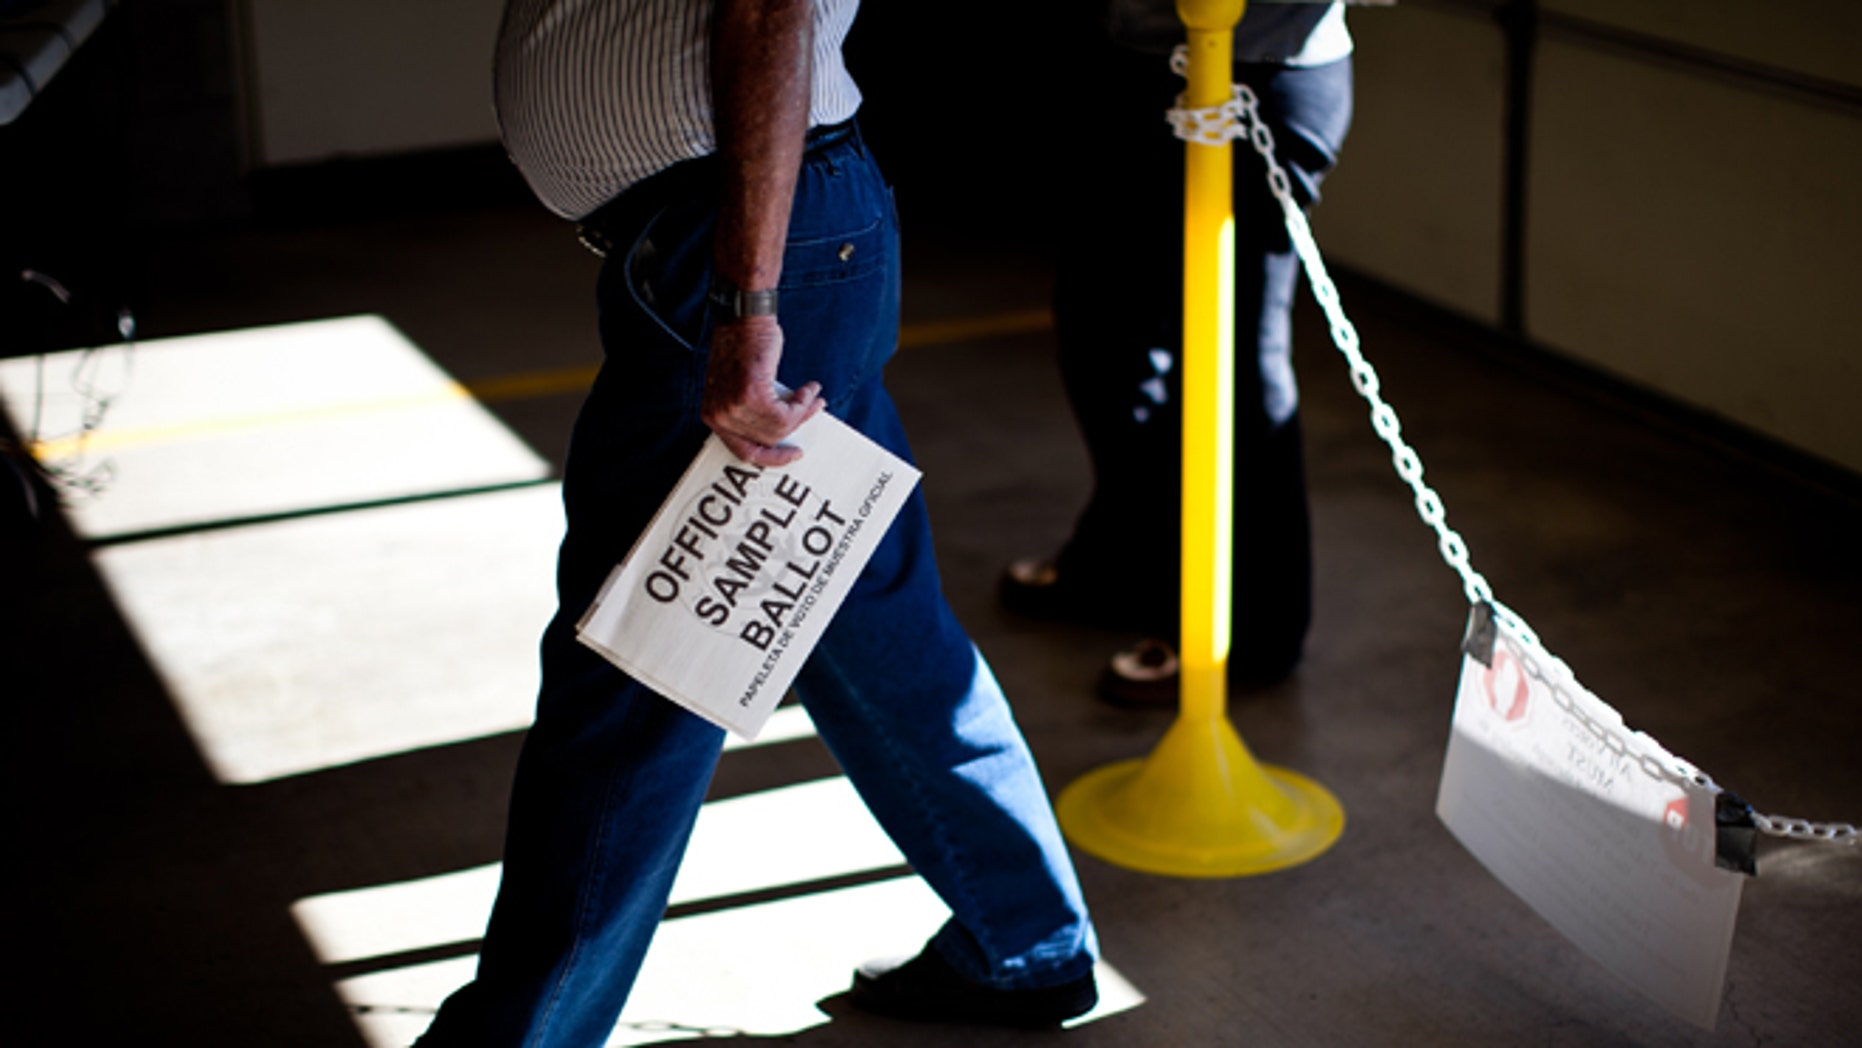 Largely ignored, ballot measures across U S  could impact